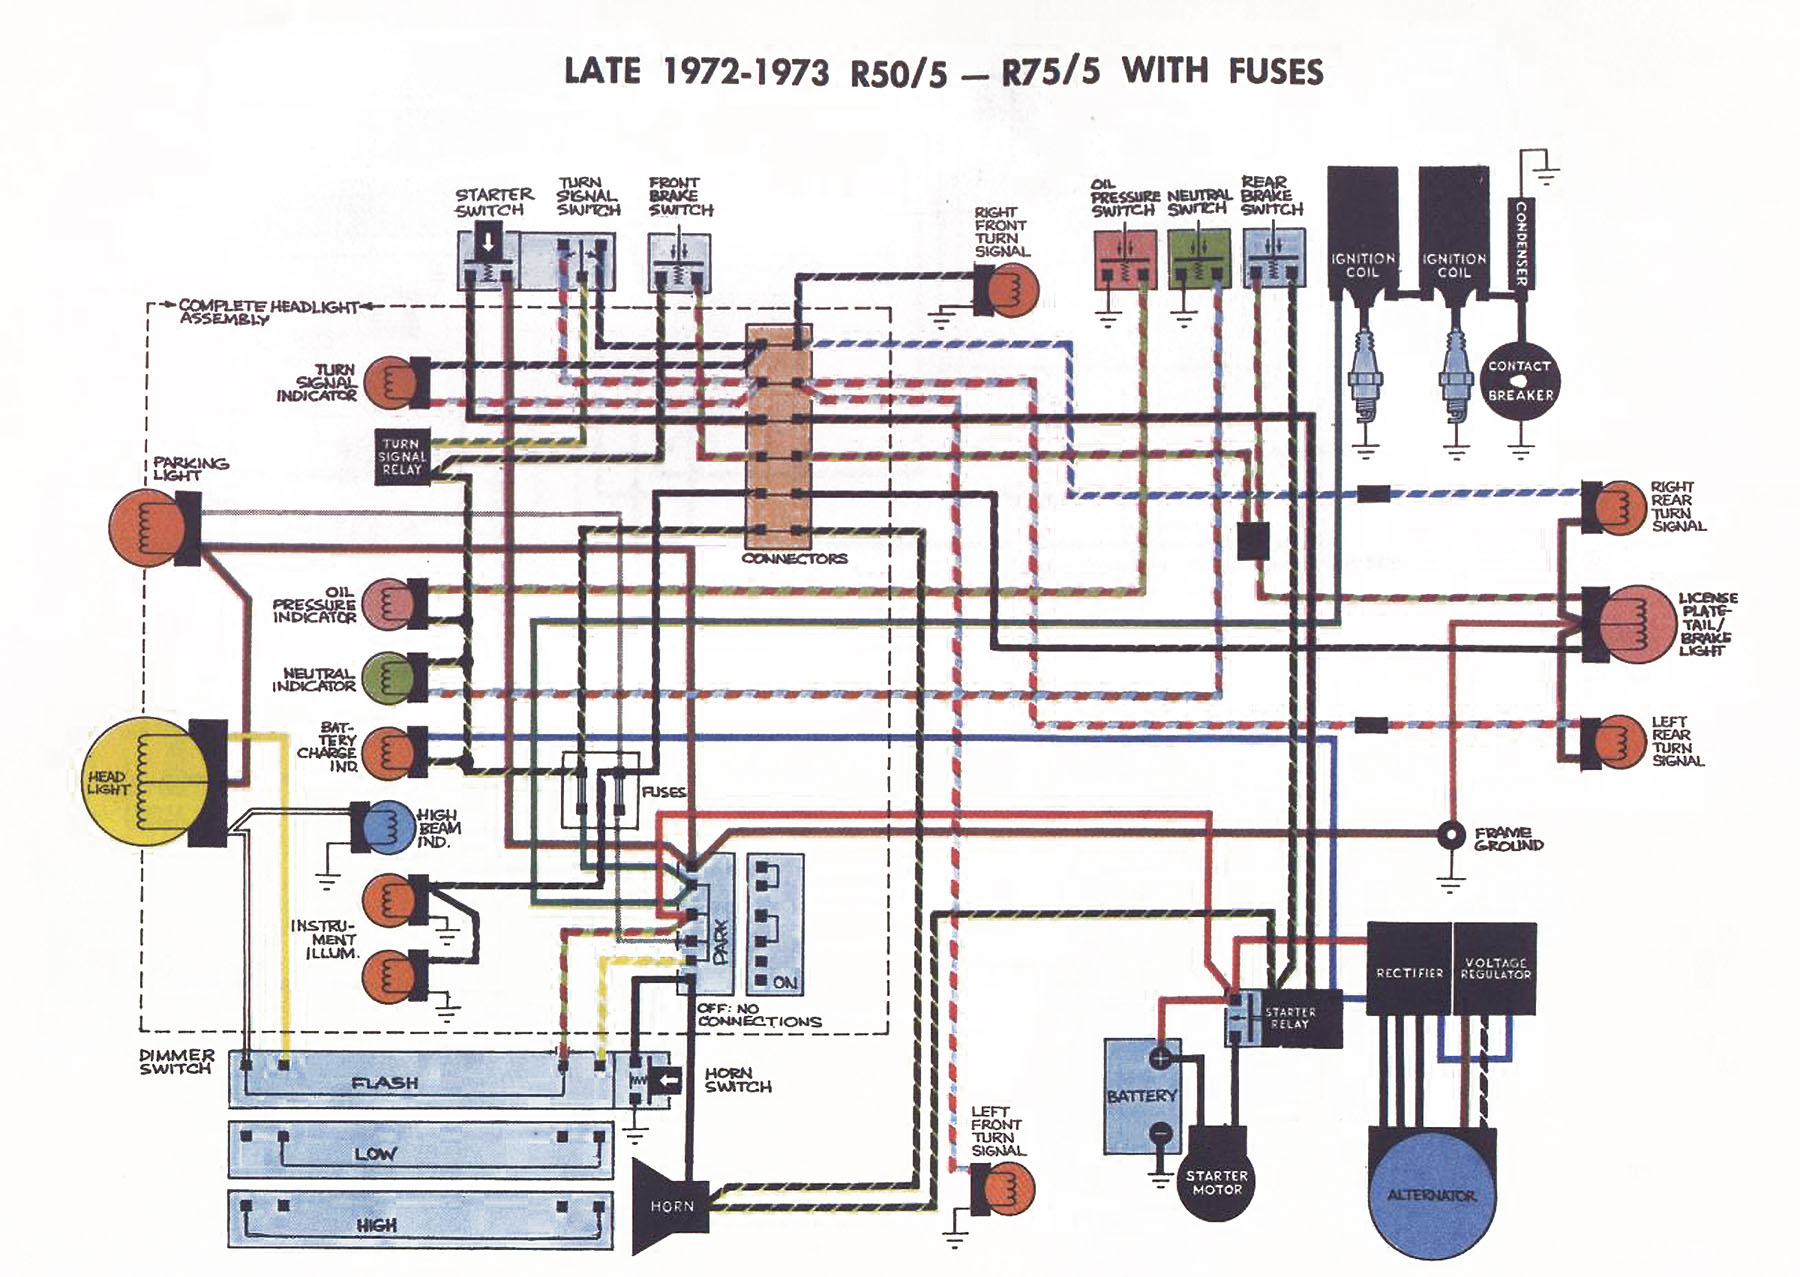 ... /5 (with fuses) schematic.